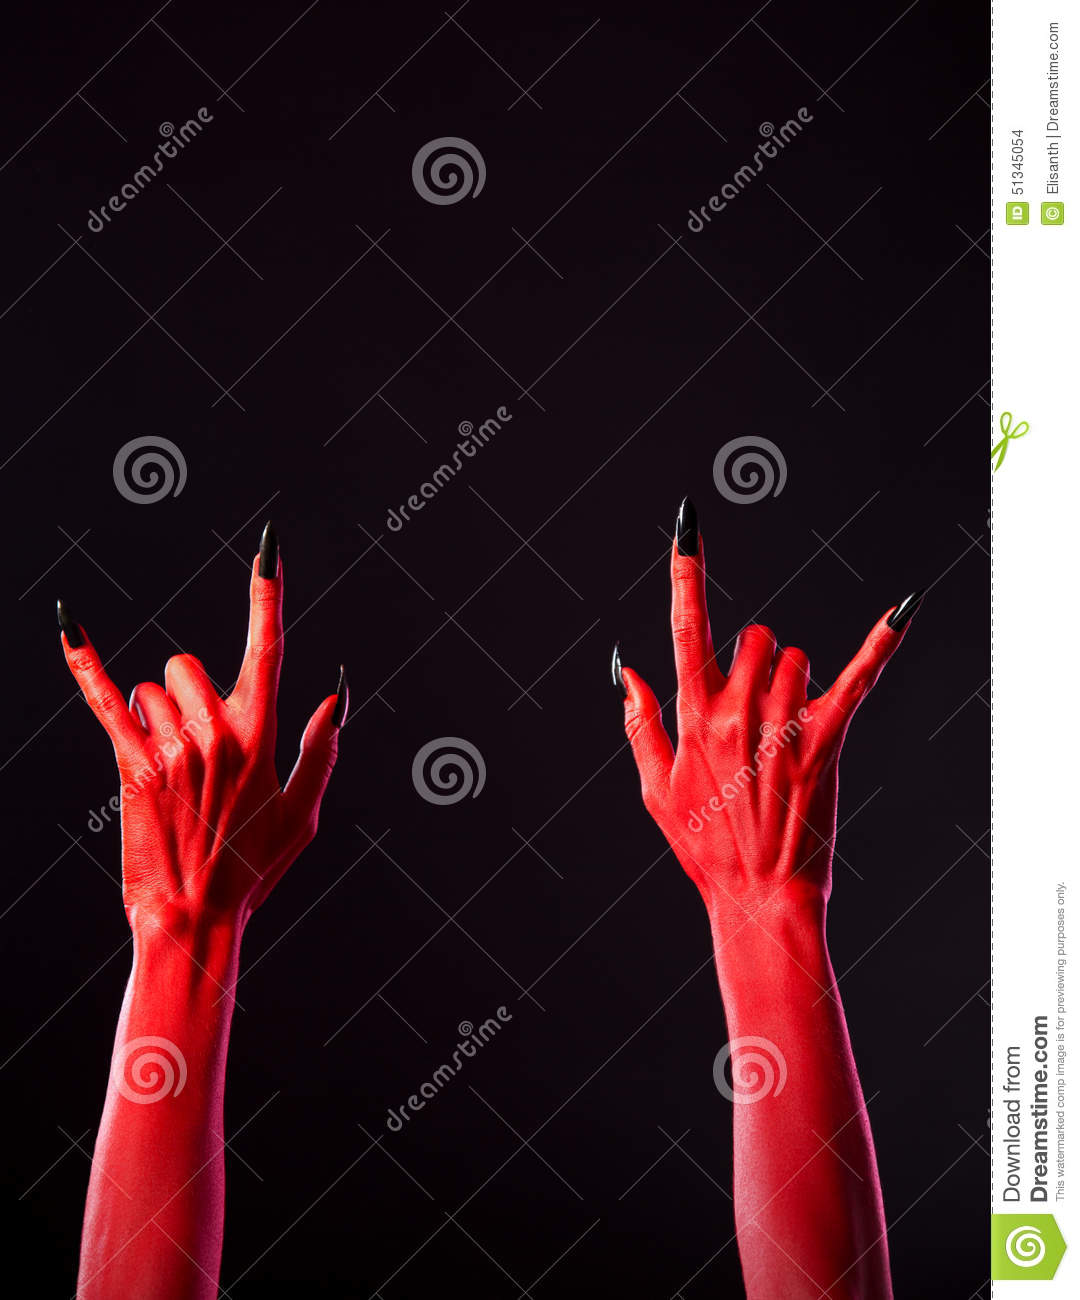 Red Spooky Hands Showing Heavy Metal Gesture Stock Photo Image Of